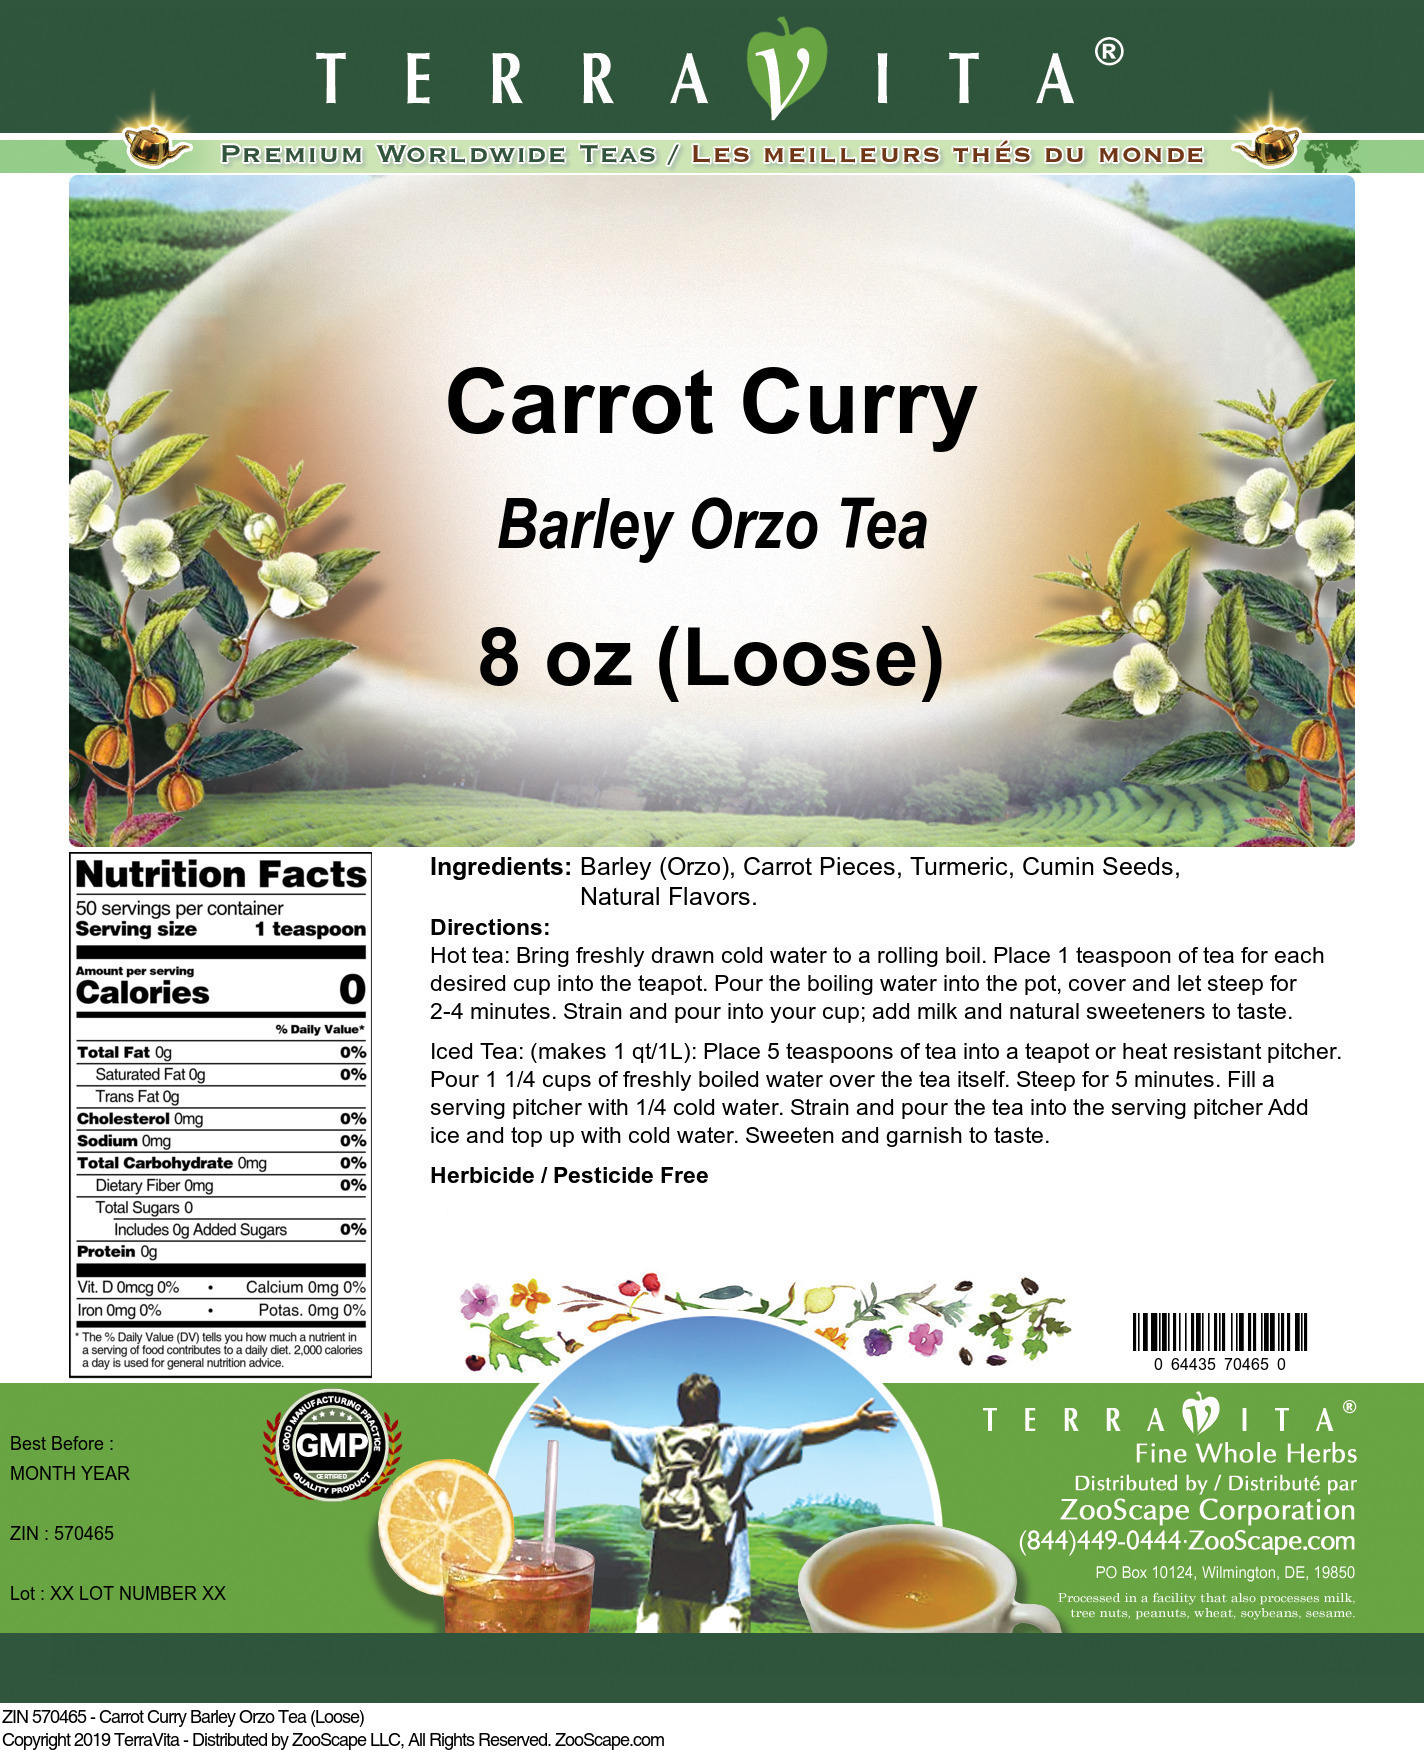 Carrot Curry Barley Orzo